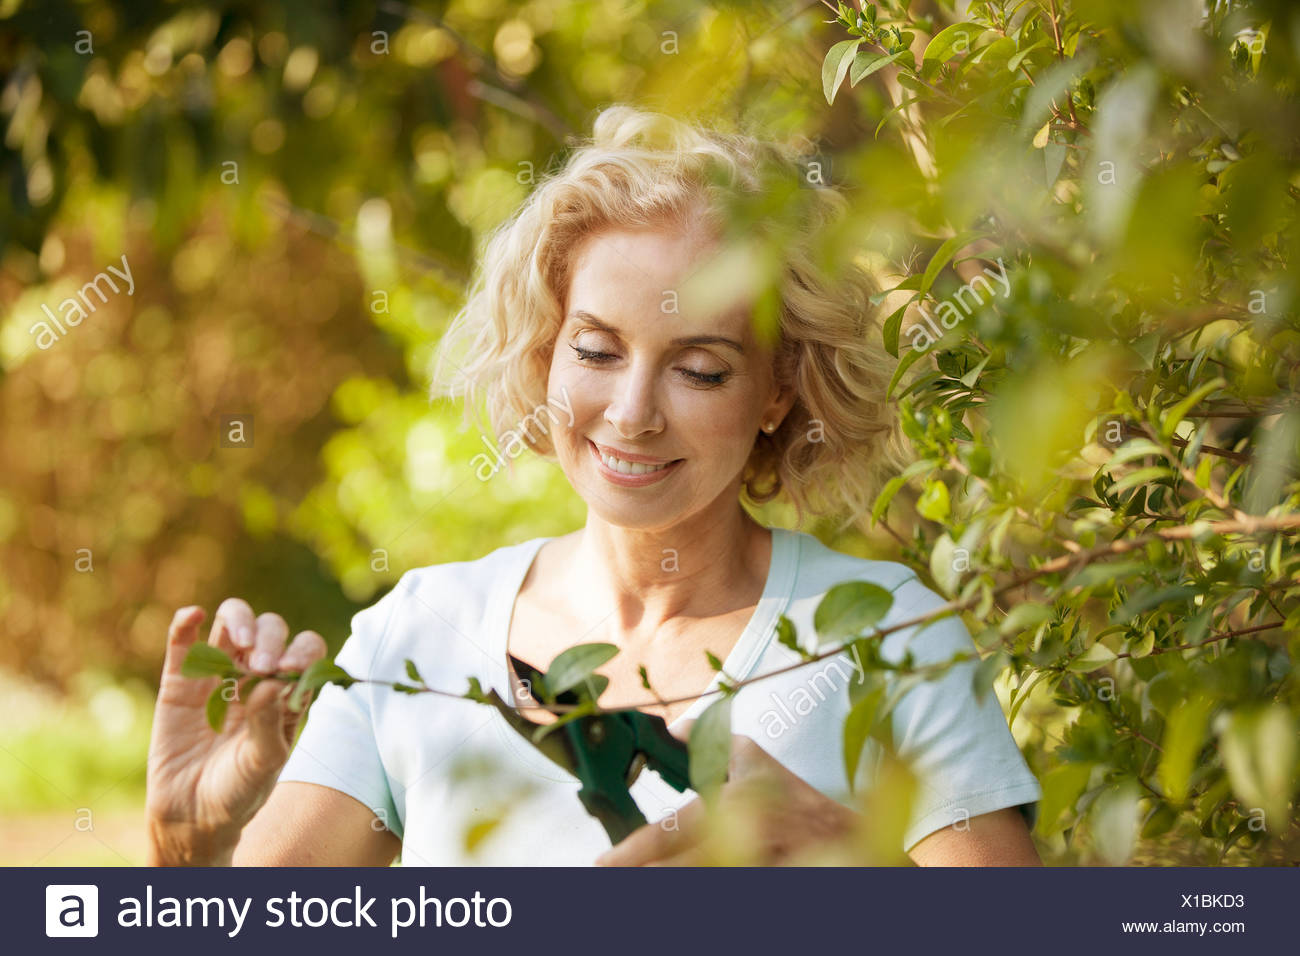 Overhanging Branch Stock Photos Amp Overhanging Branch Stock